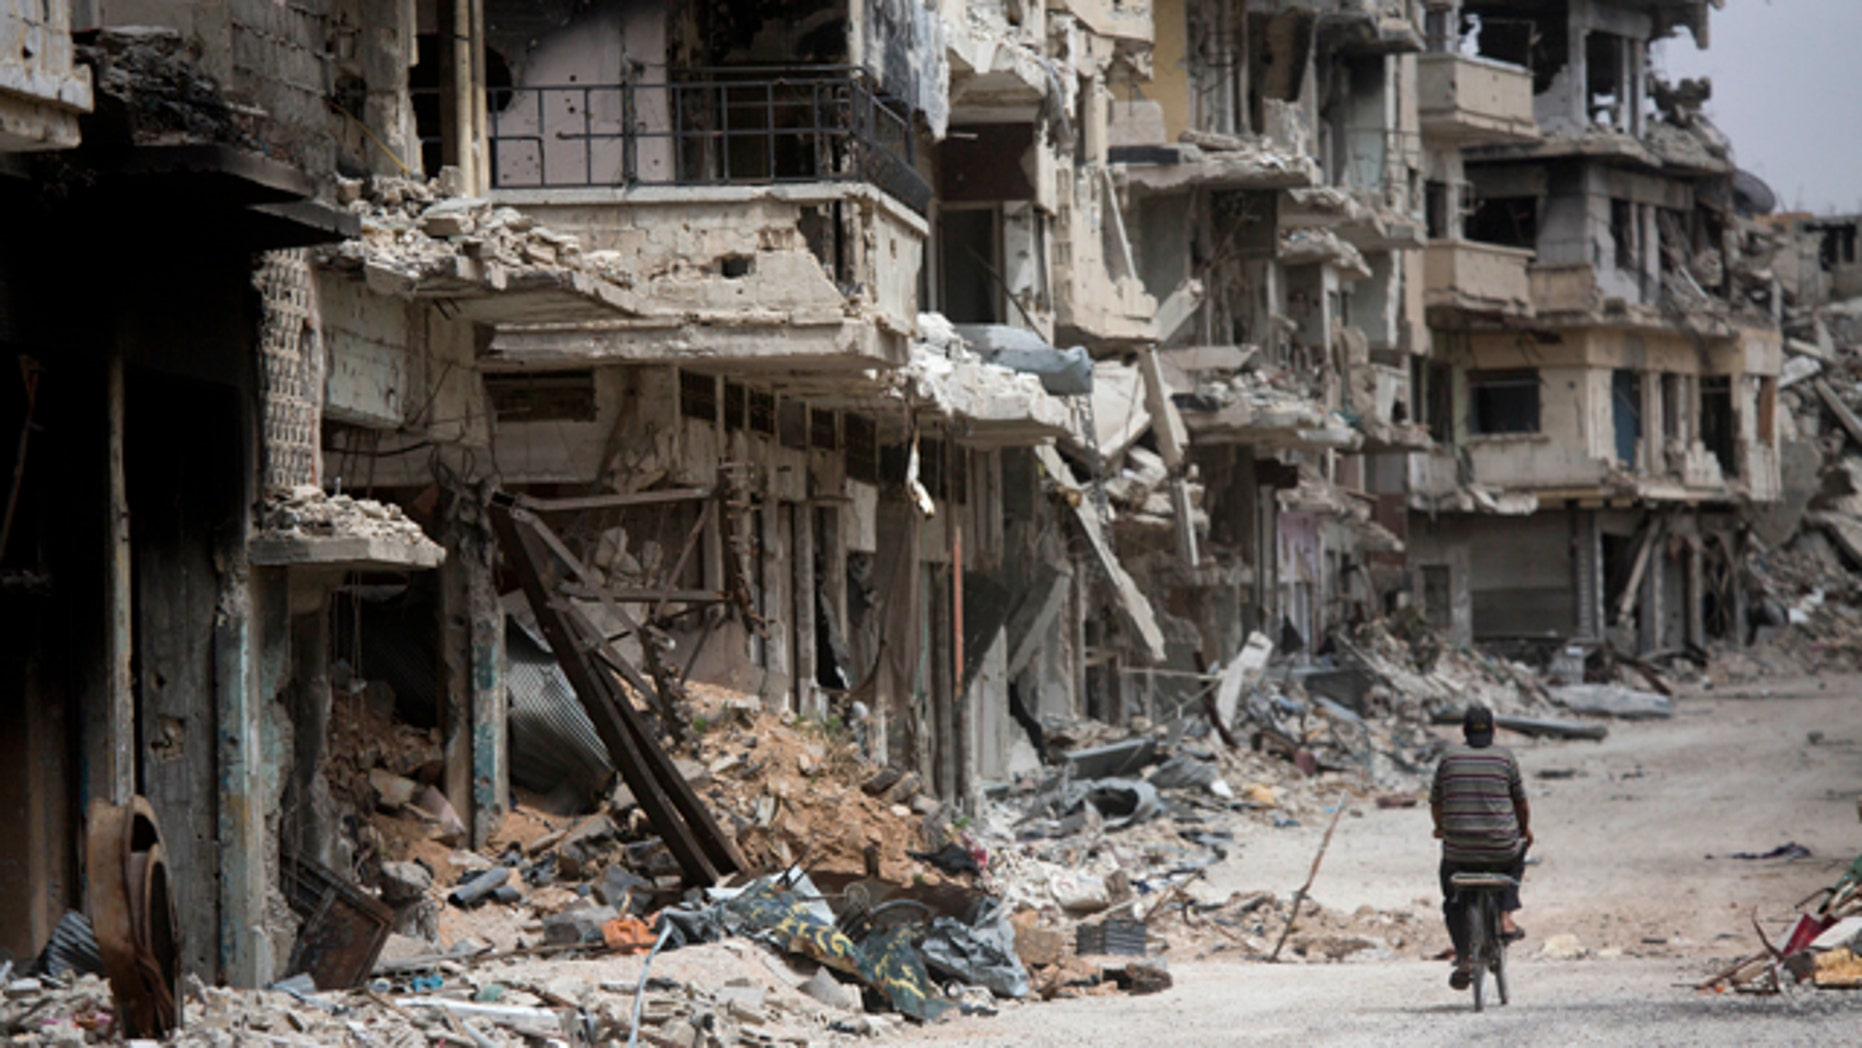 FILE - In this June 5, 2014, file photo, a man rides a bicycle  through a devastated part of Homs, Syria. (AP Photo/Dusan Vranic, File)